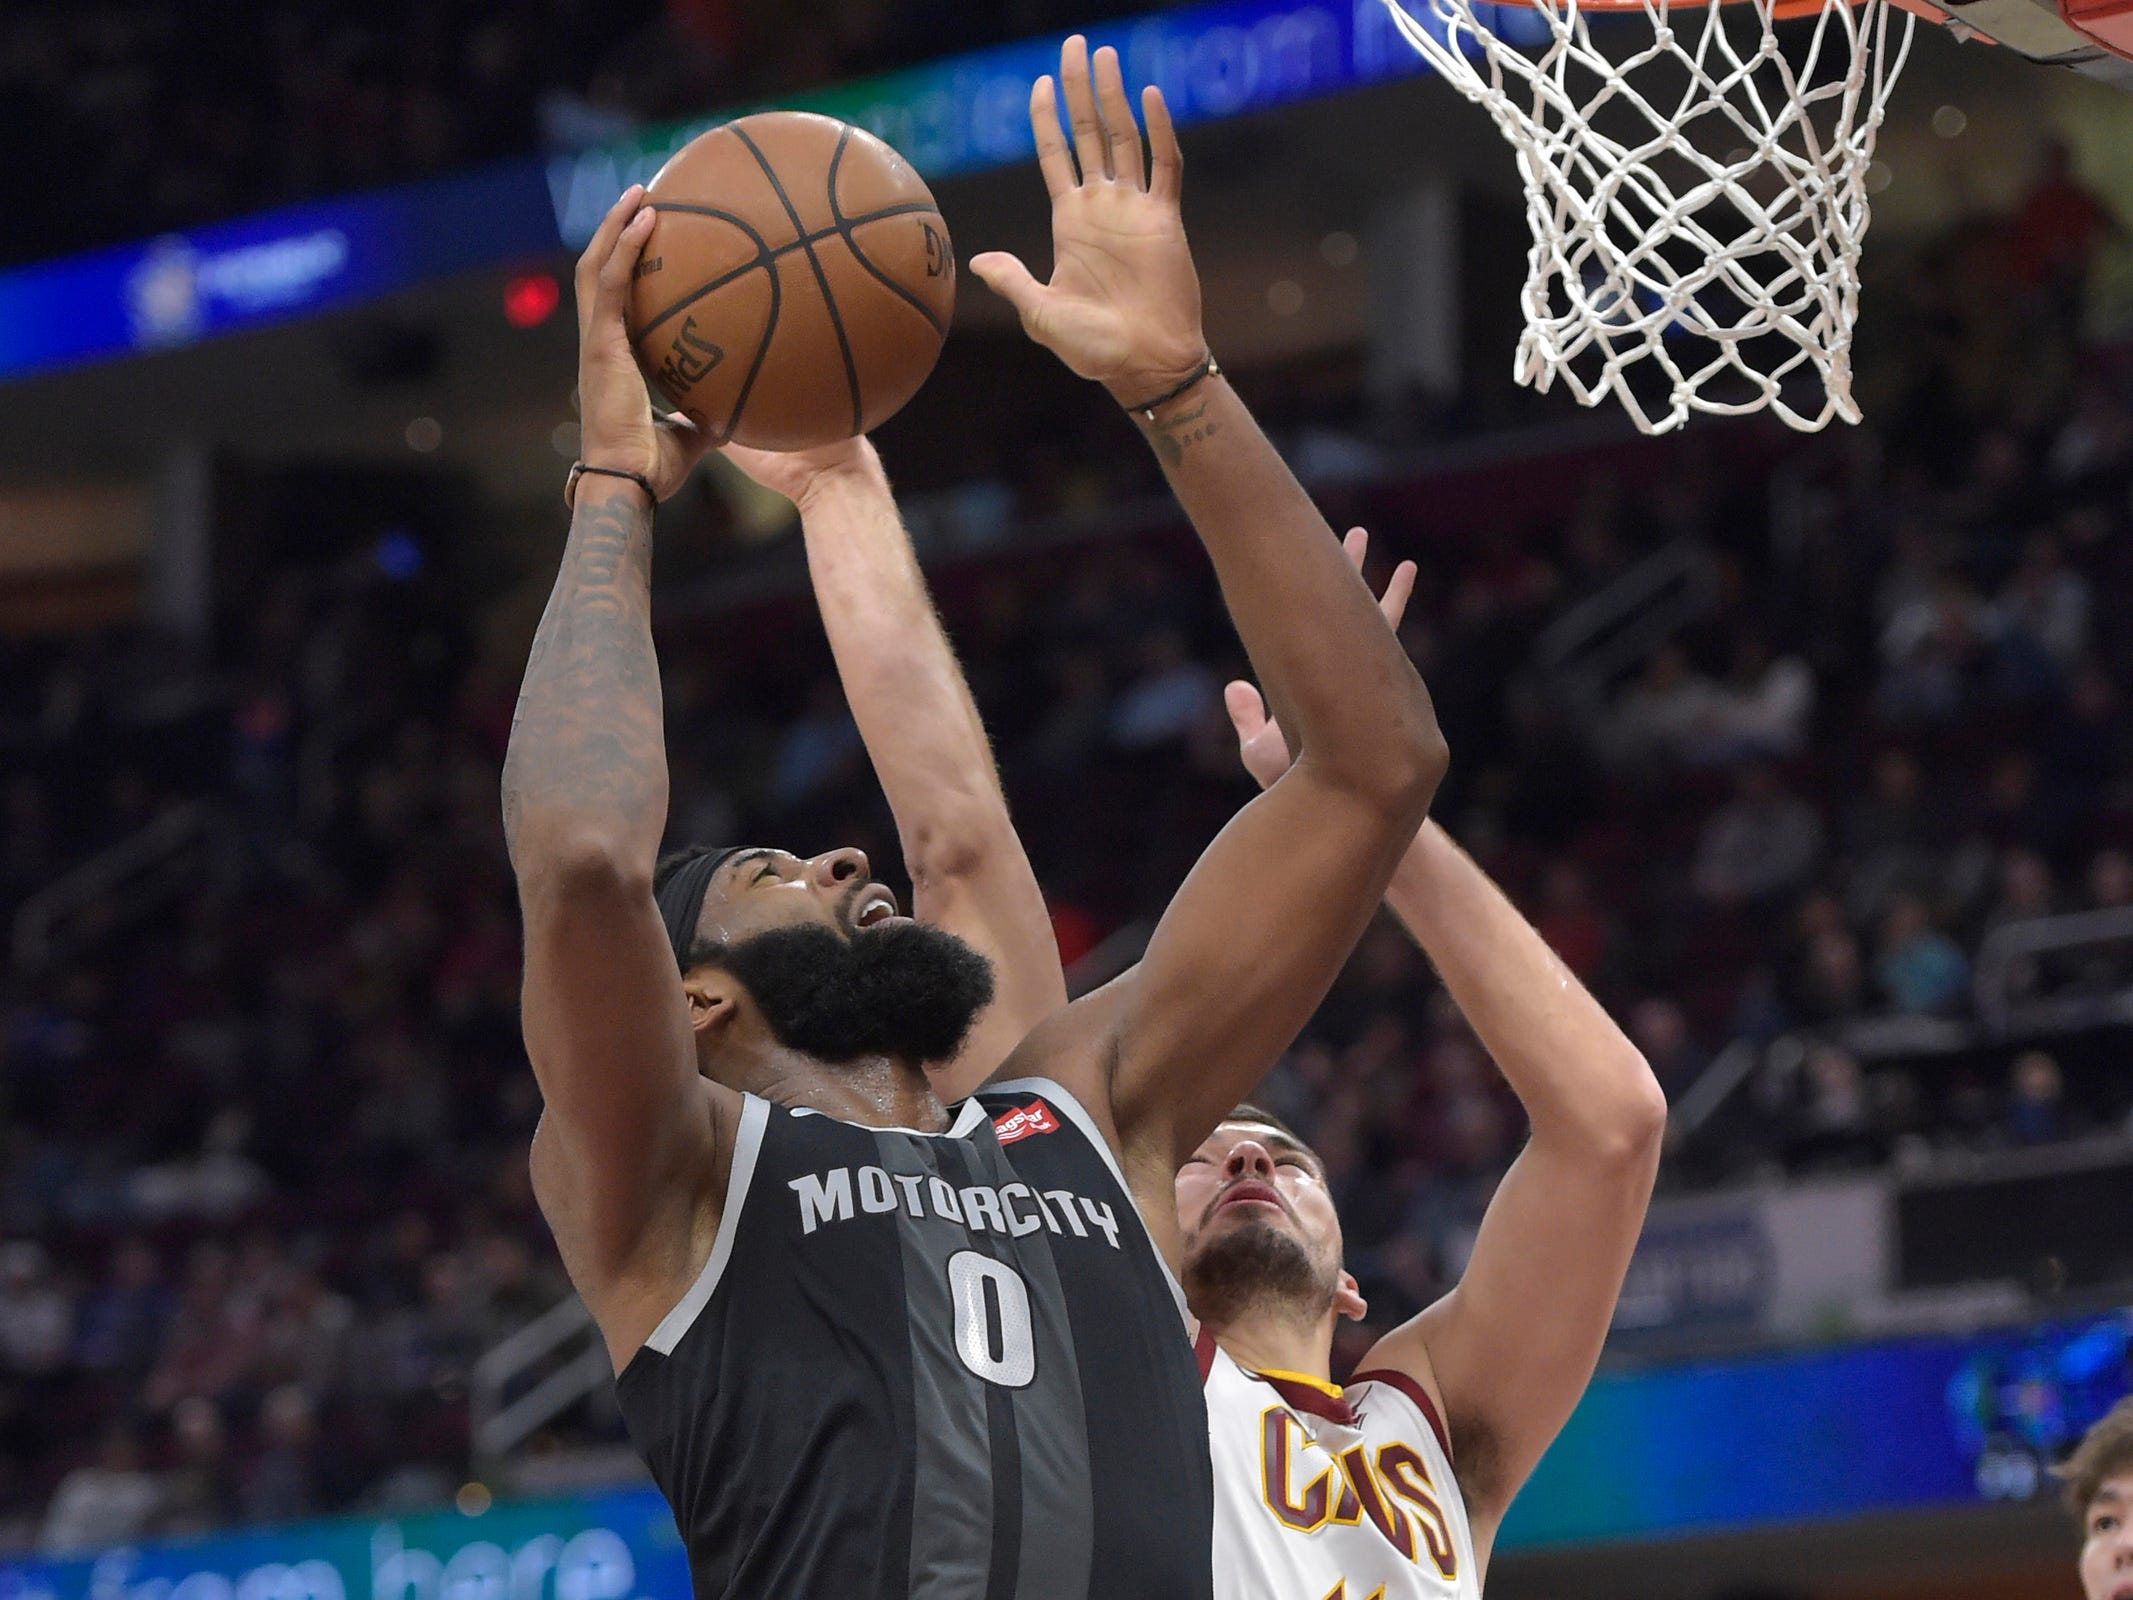 Detroit Pistons center Andre Drummond shoots against Cleveland Cavaliers center Ante Zizic in the second quarter at Quicken Loans Arena, March 18, 2019.